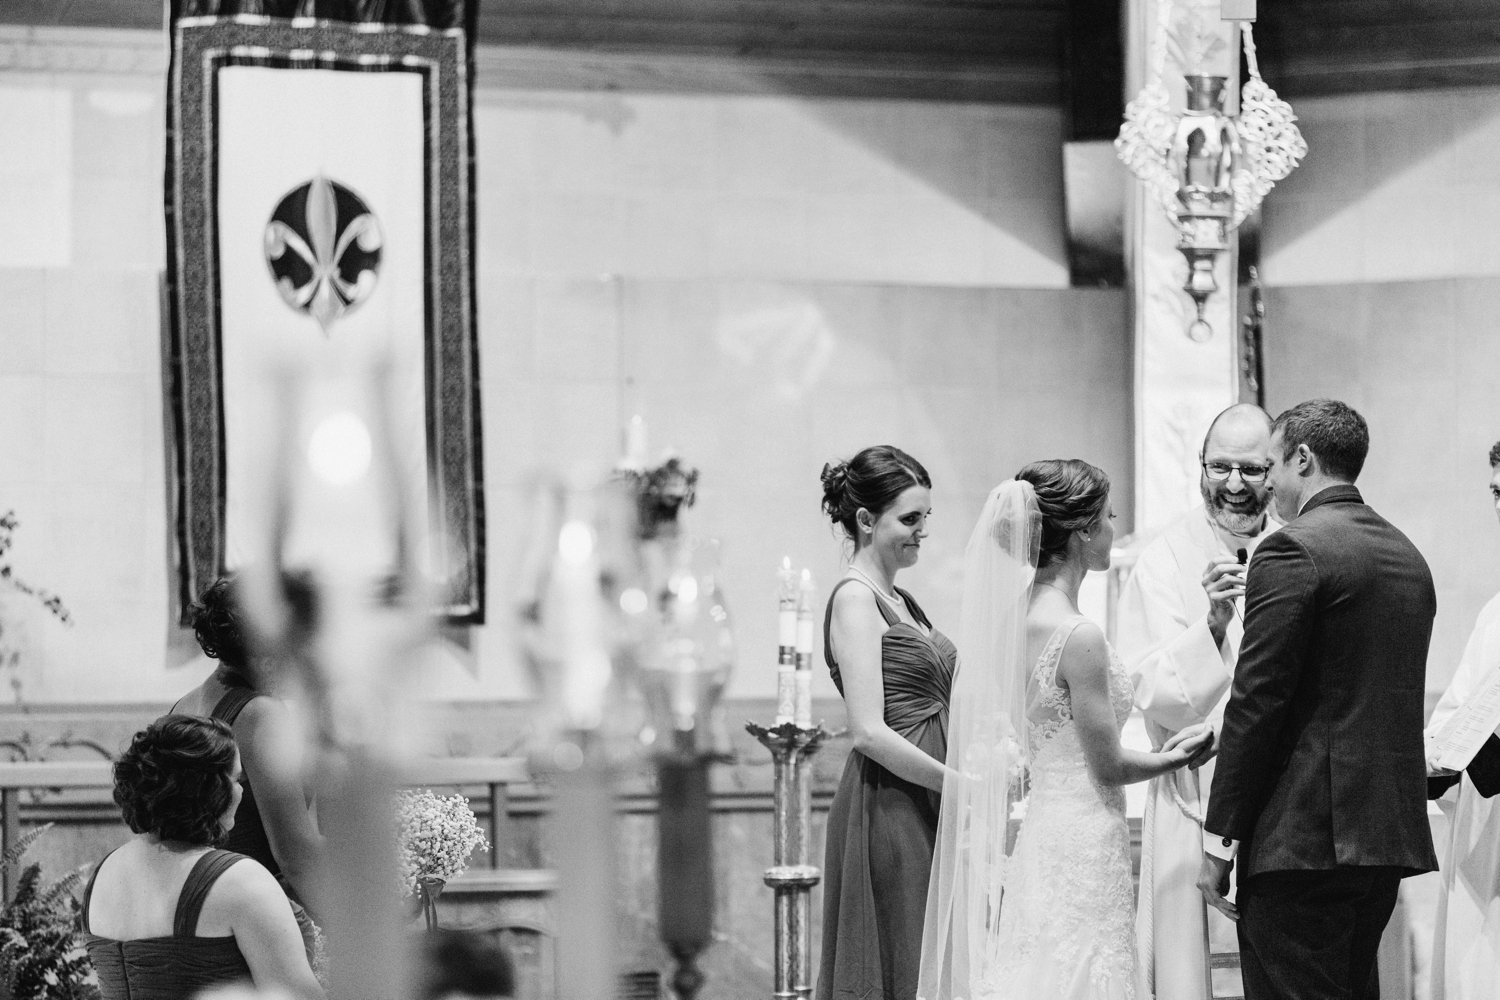 Indiana_Wedding_Photography_Chloe_Luka_Photography_6791.jpg